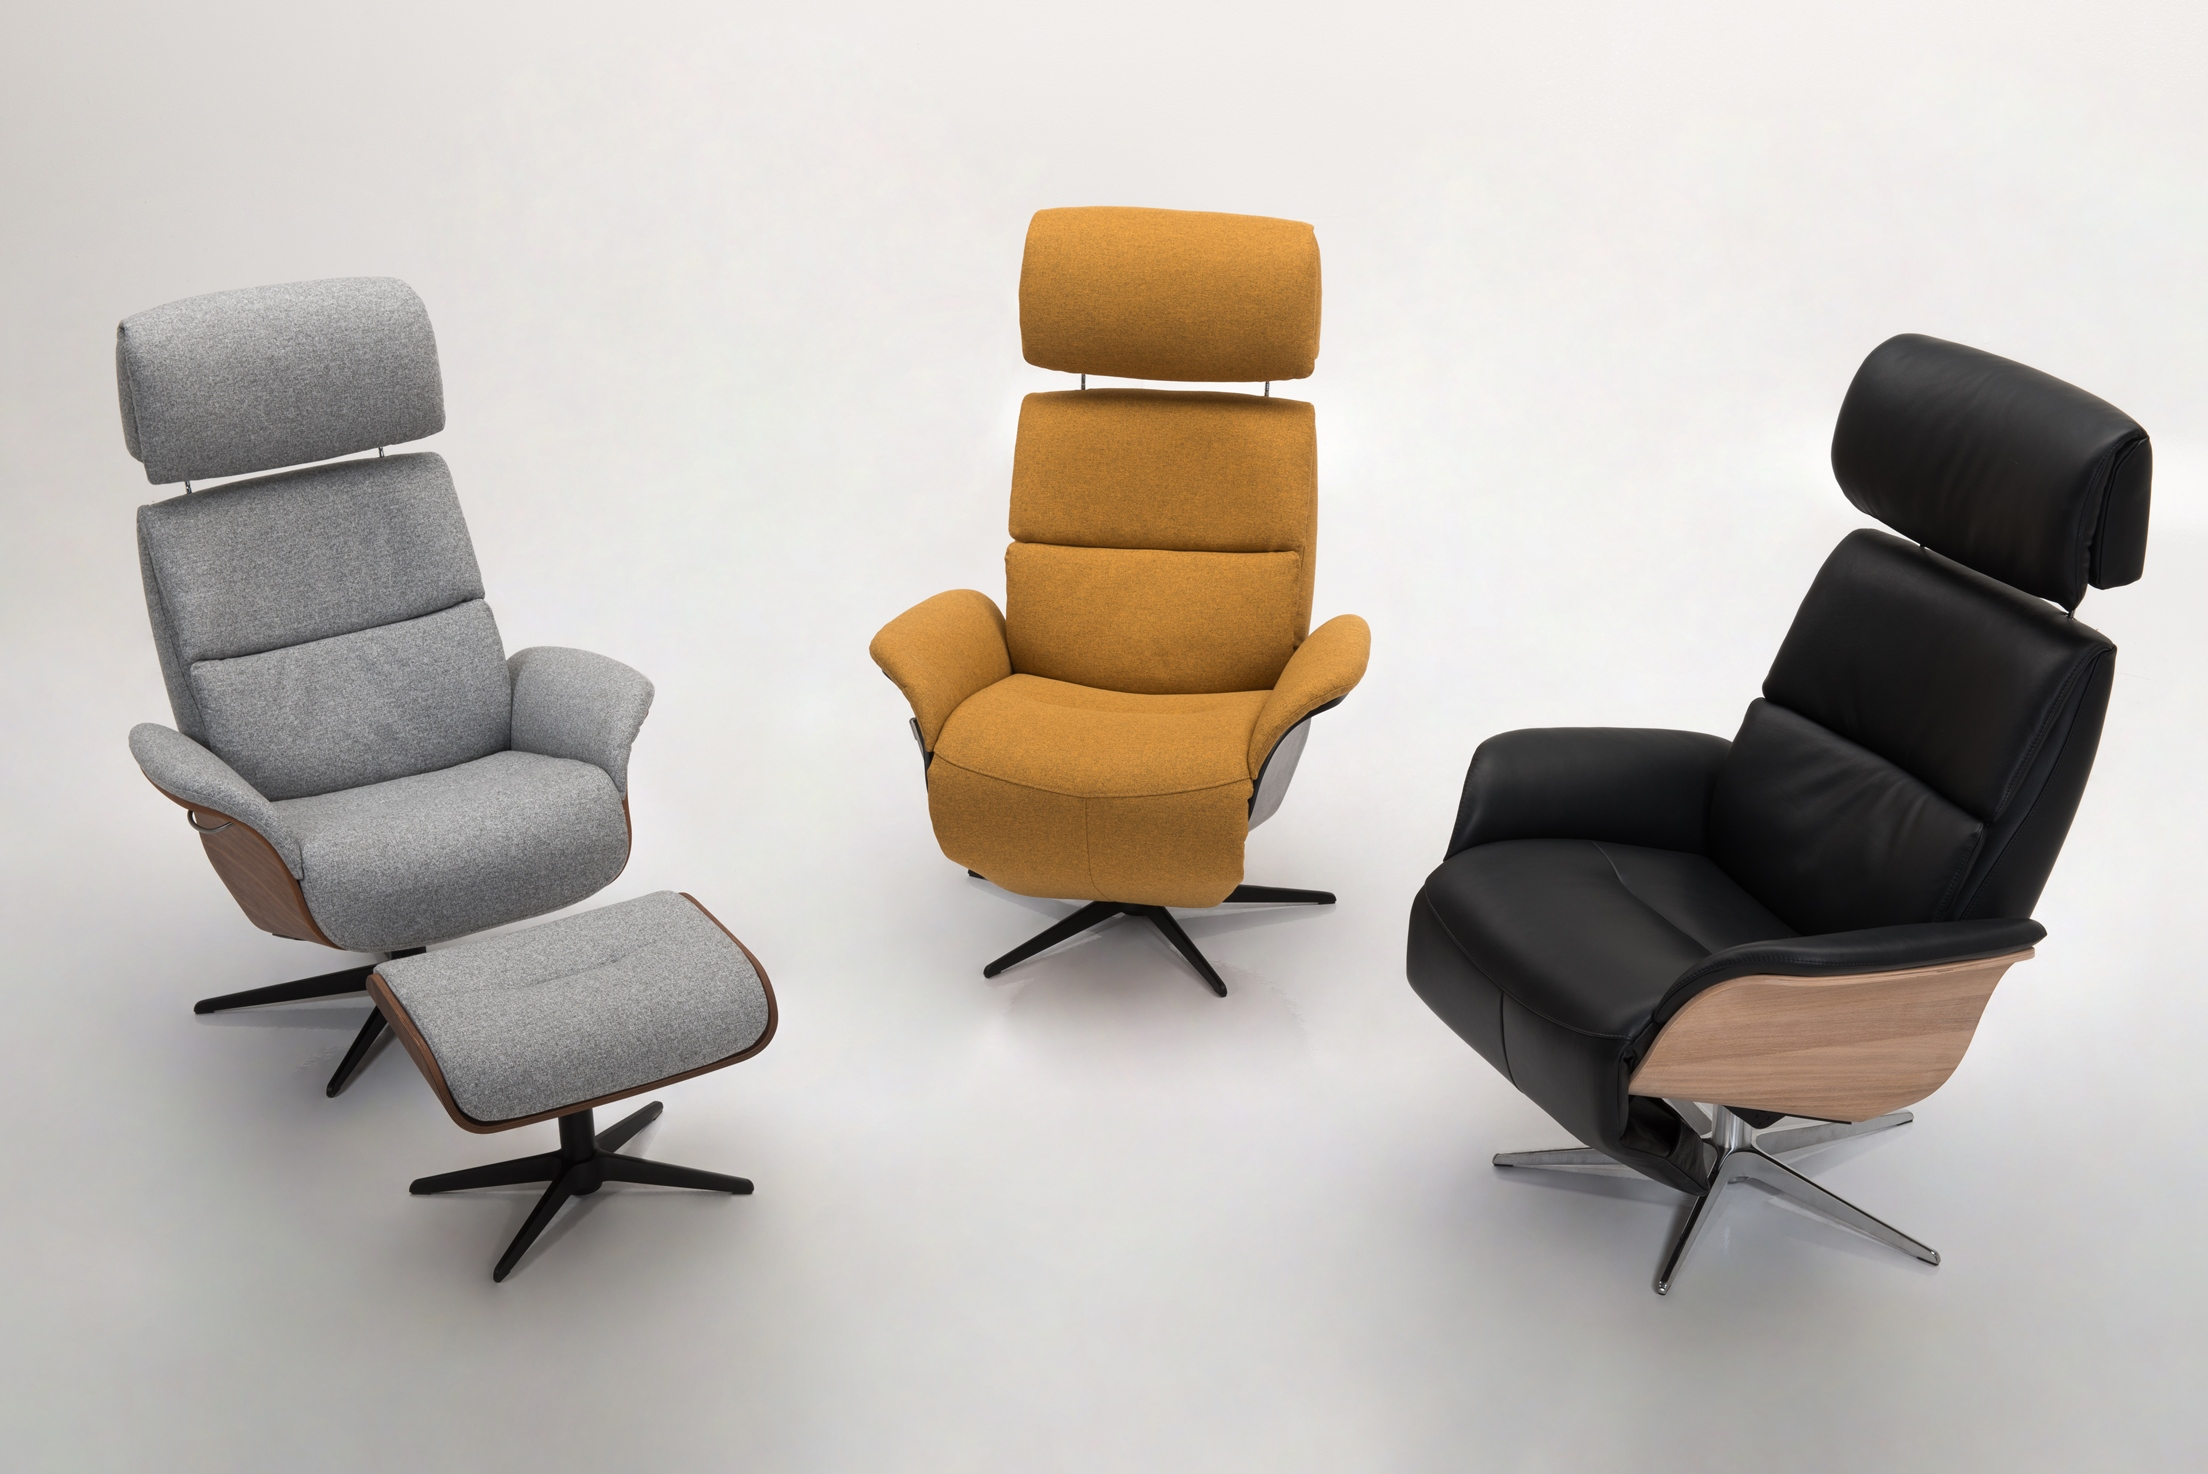 Fauteuil relax confortable